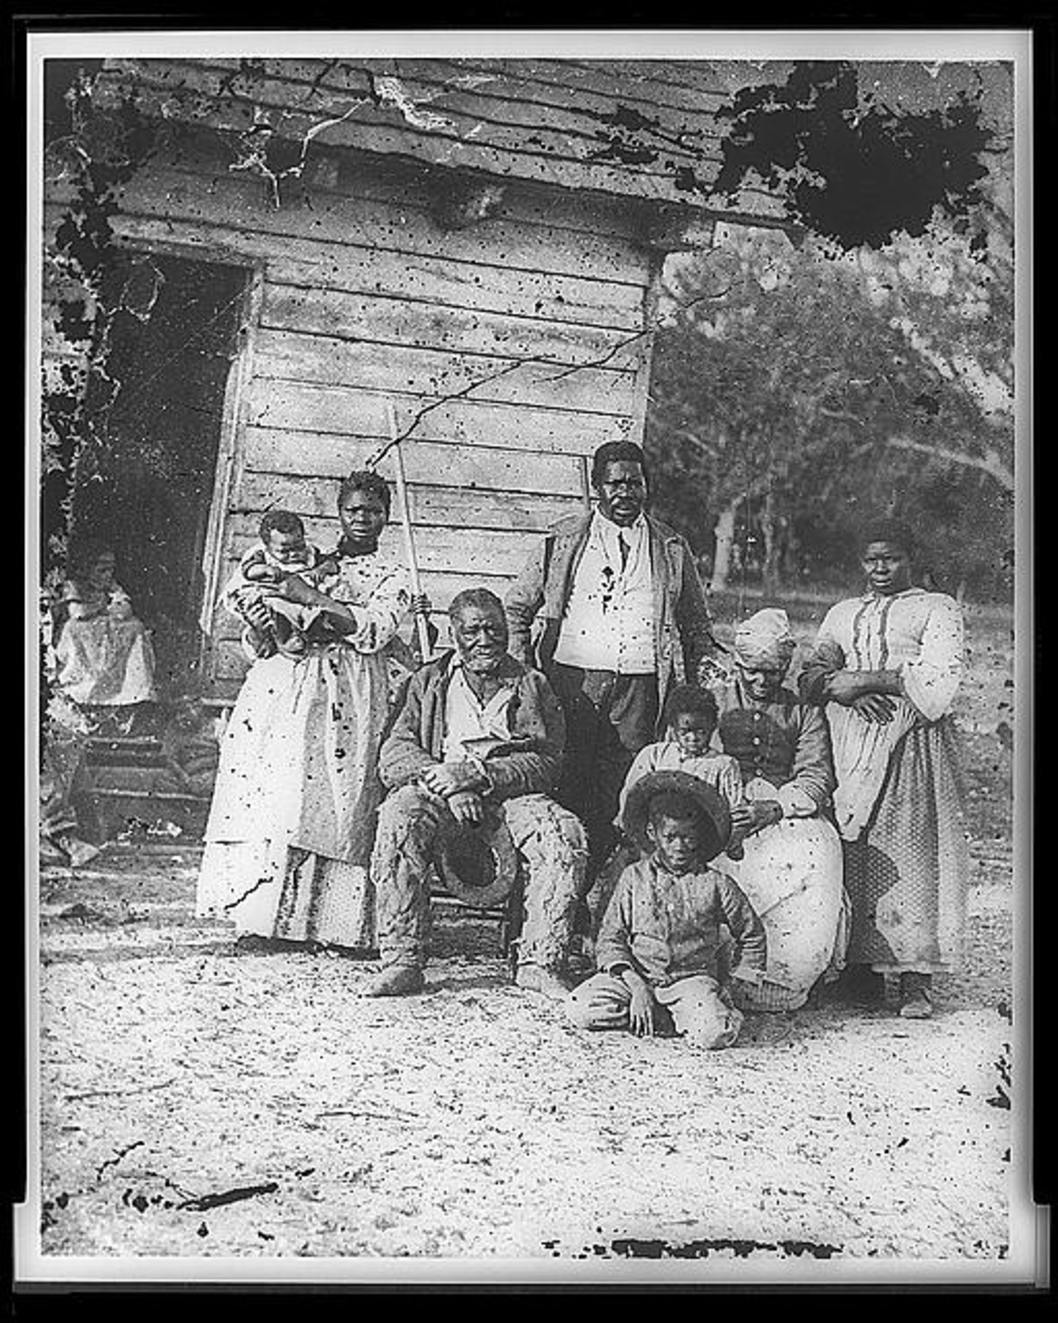 A look at the state of slavery in the south